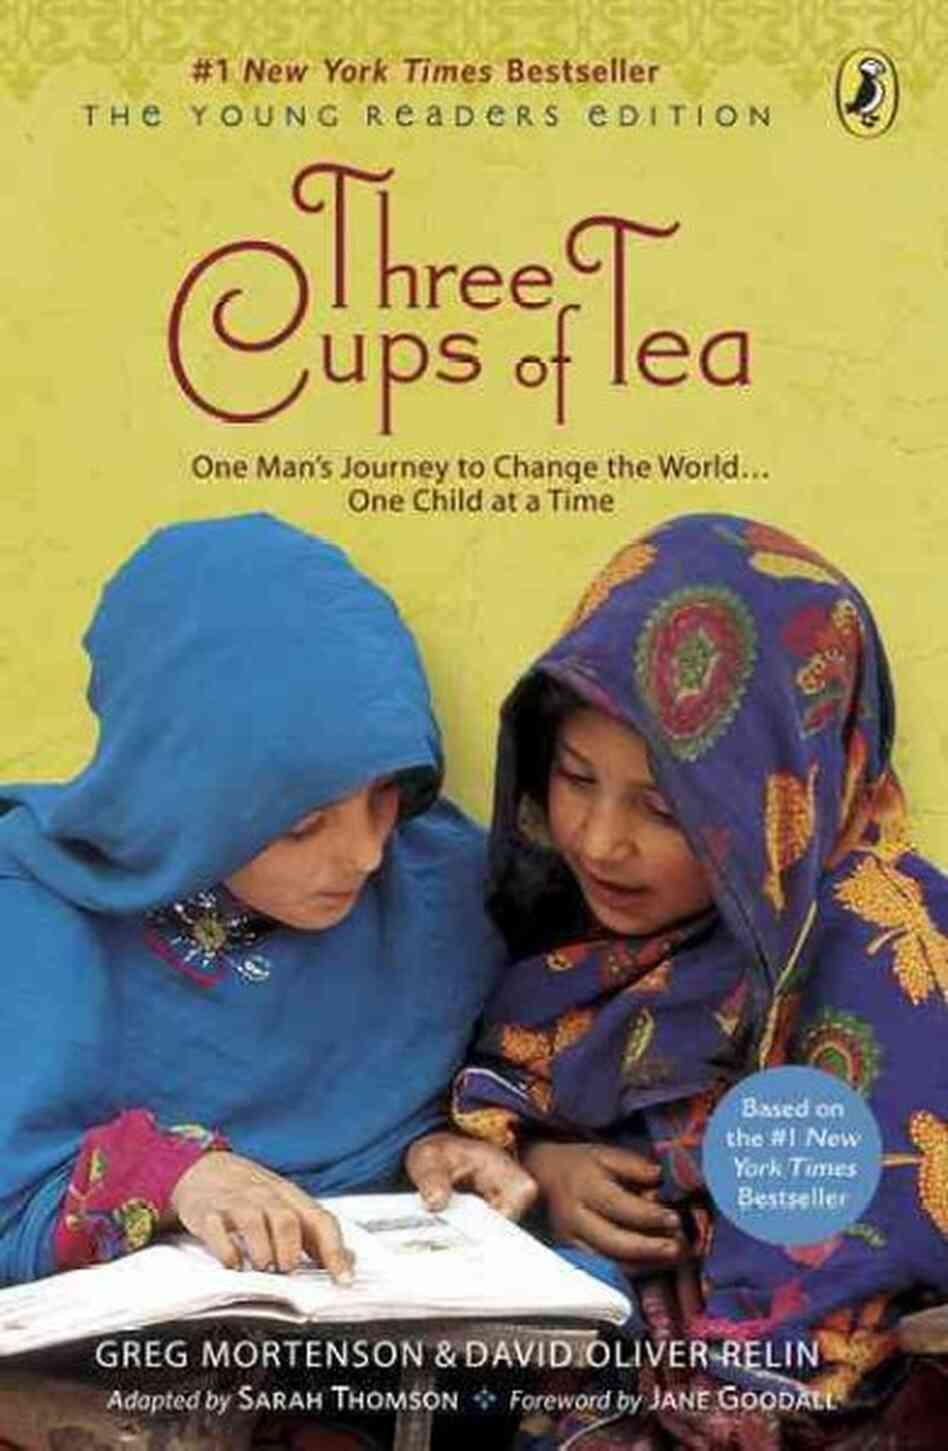 Three Cups of Tea: One Man's Journey to Change the World... One Child at a Time (Young Reader's Edition) Sarah Thomson, Greg Mortenson, David Oliver Relin and Jane Goodall